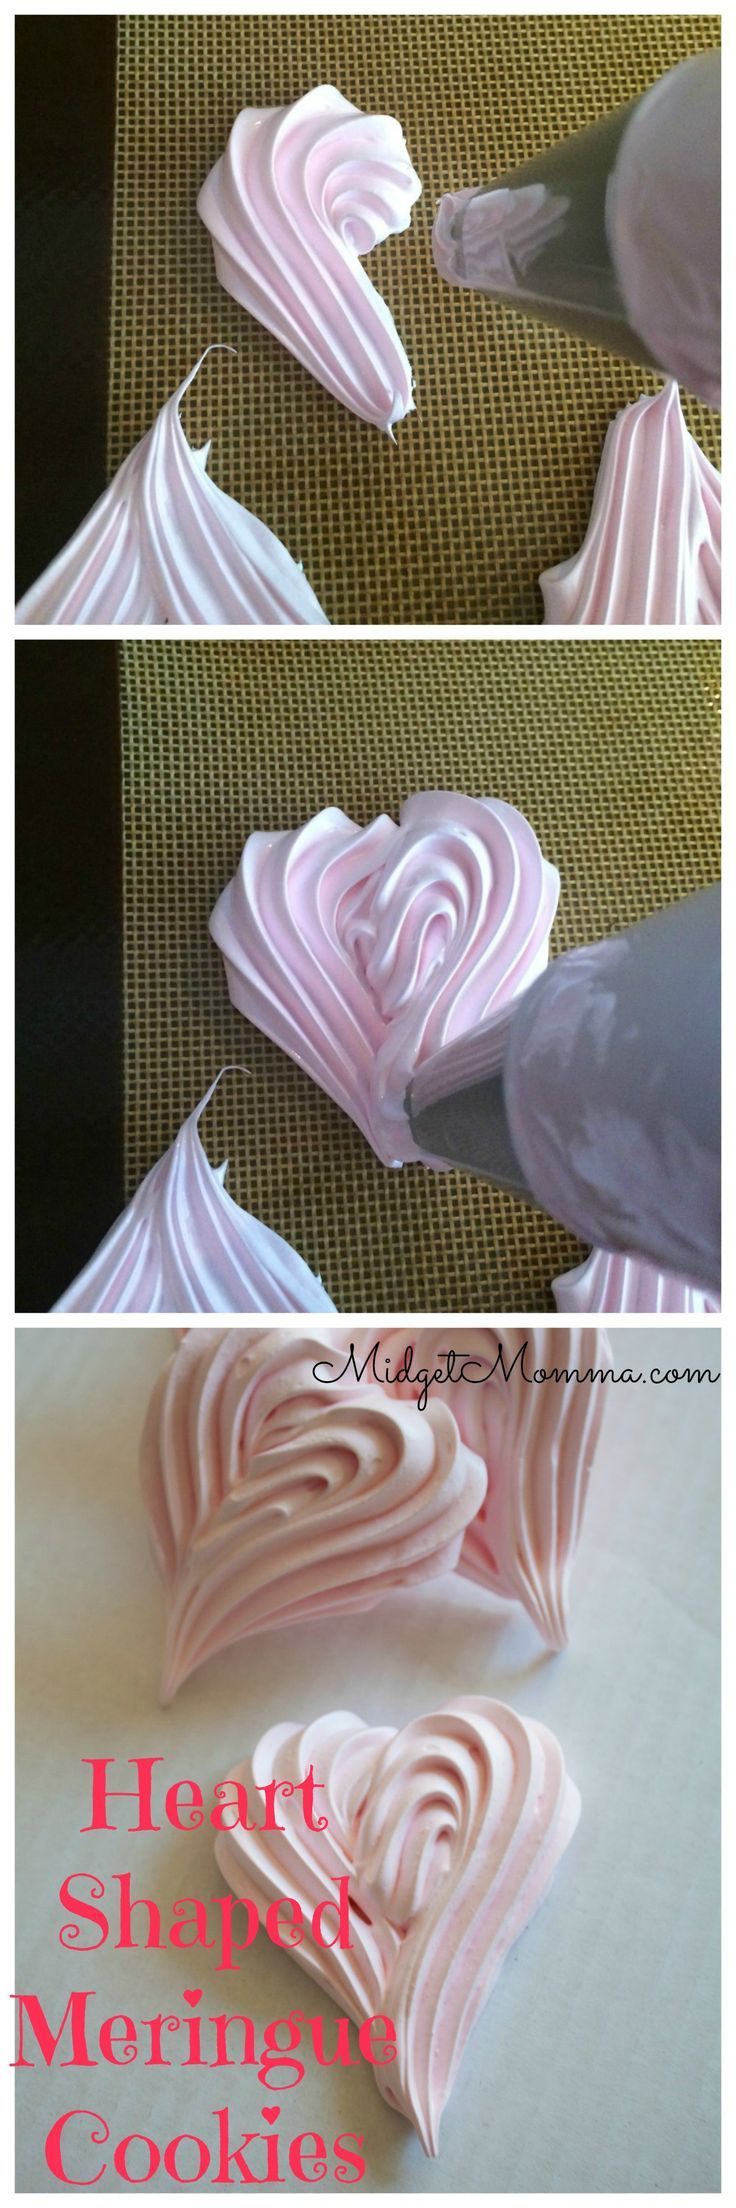 These Meringue Cookies are great for Valentine's Day since they are shaped like hearts! They are a tasty cookie that is the perfect Valentine's Day cookie to make. They look so fancy when they are all boxed up or sitting on the table that they would make